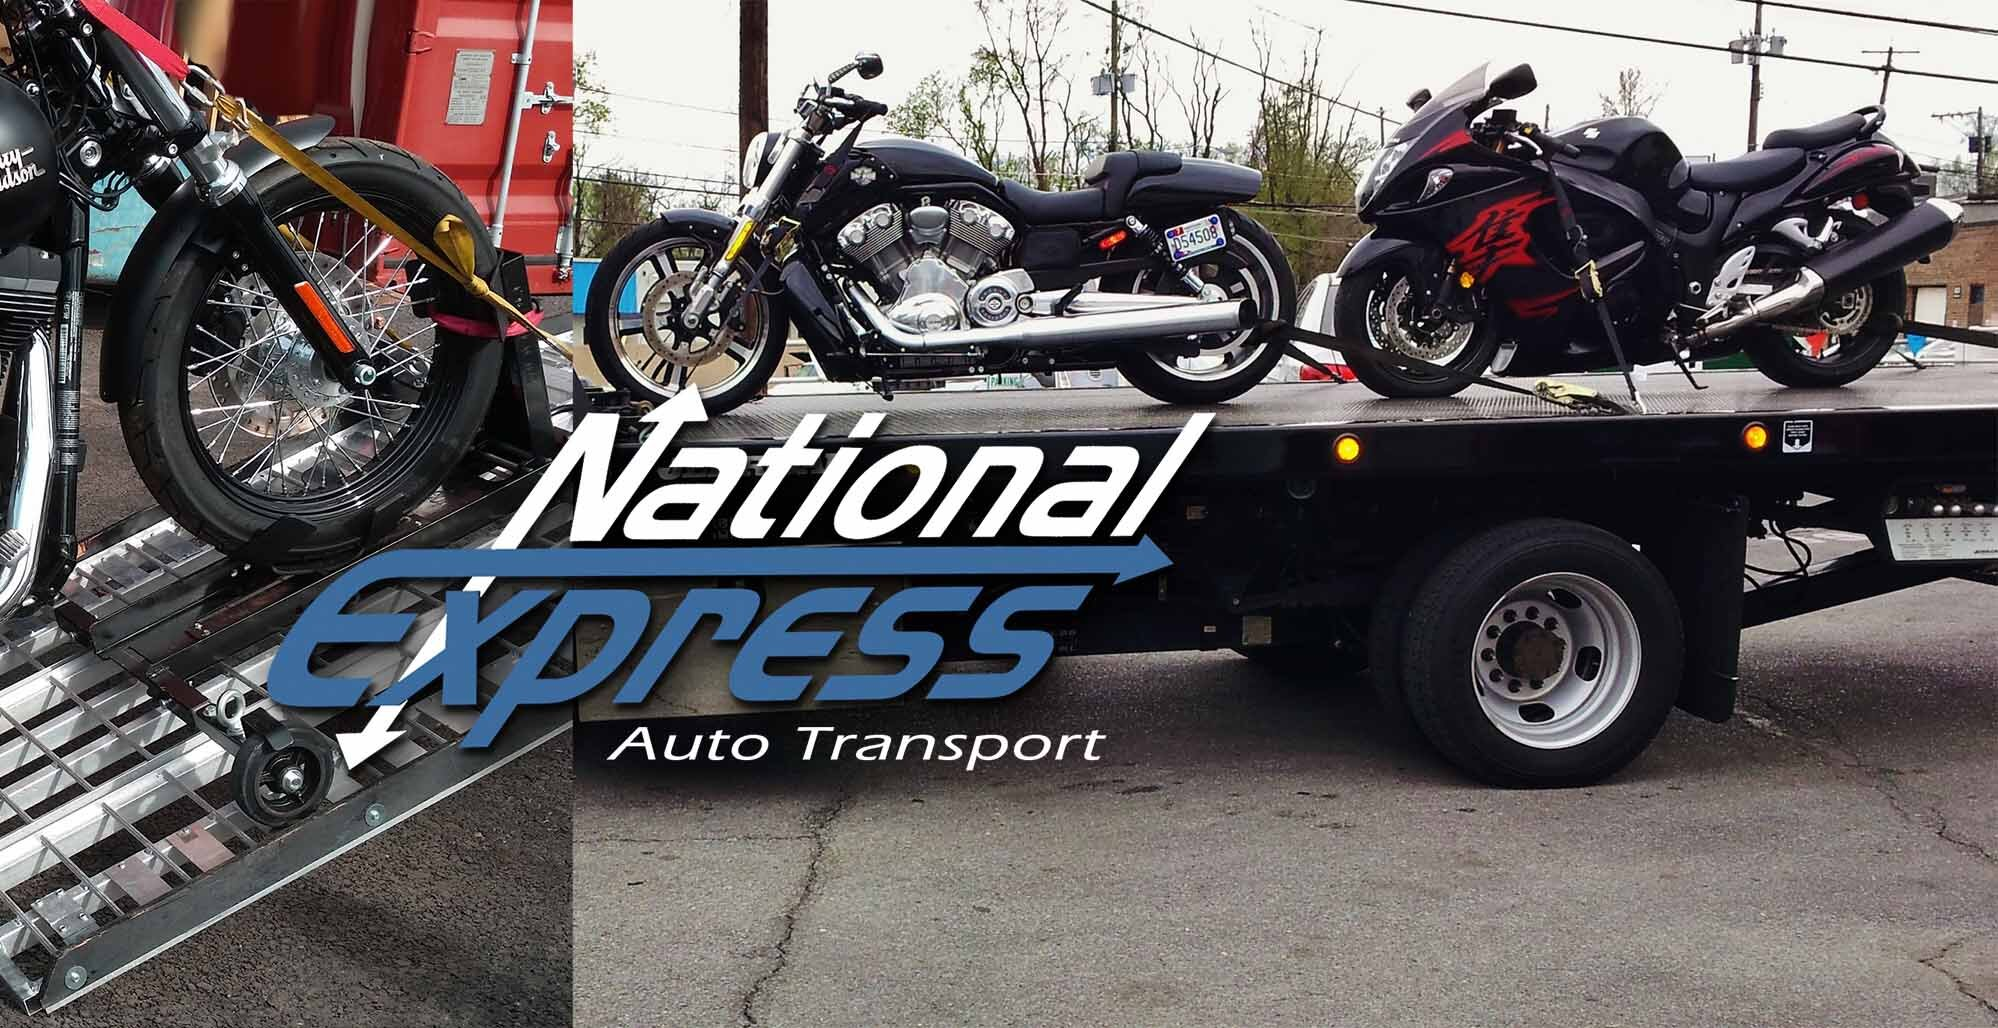 national express motorcycle shipping